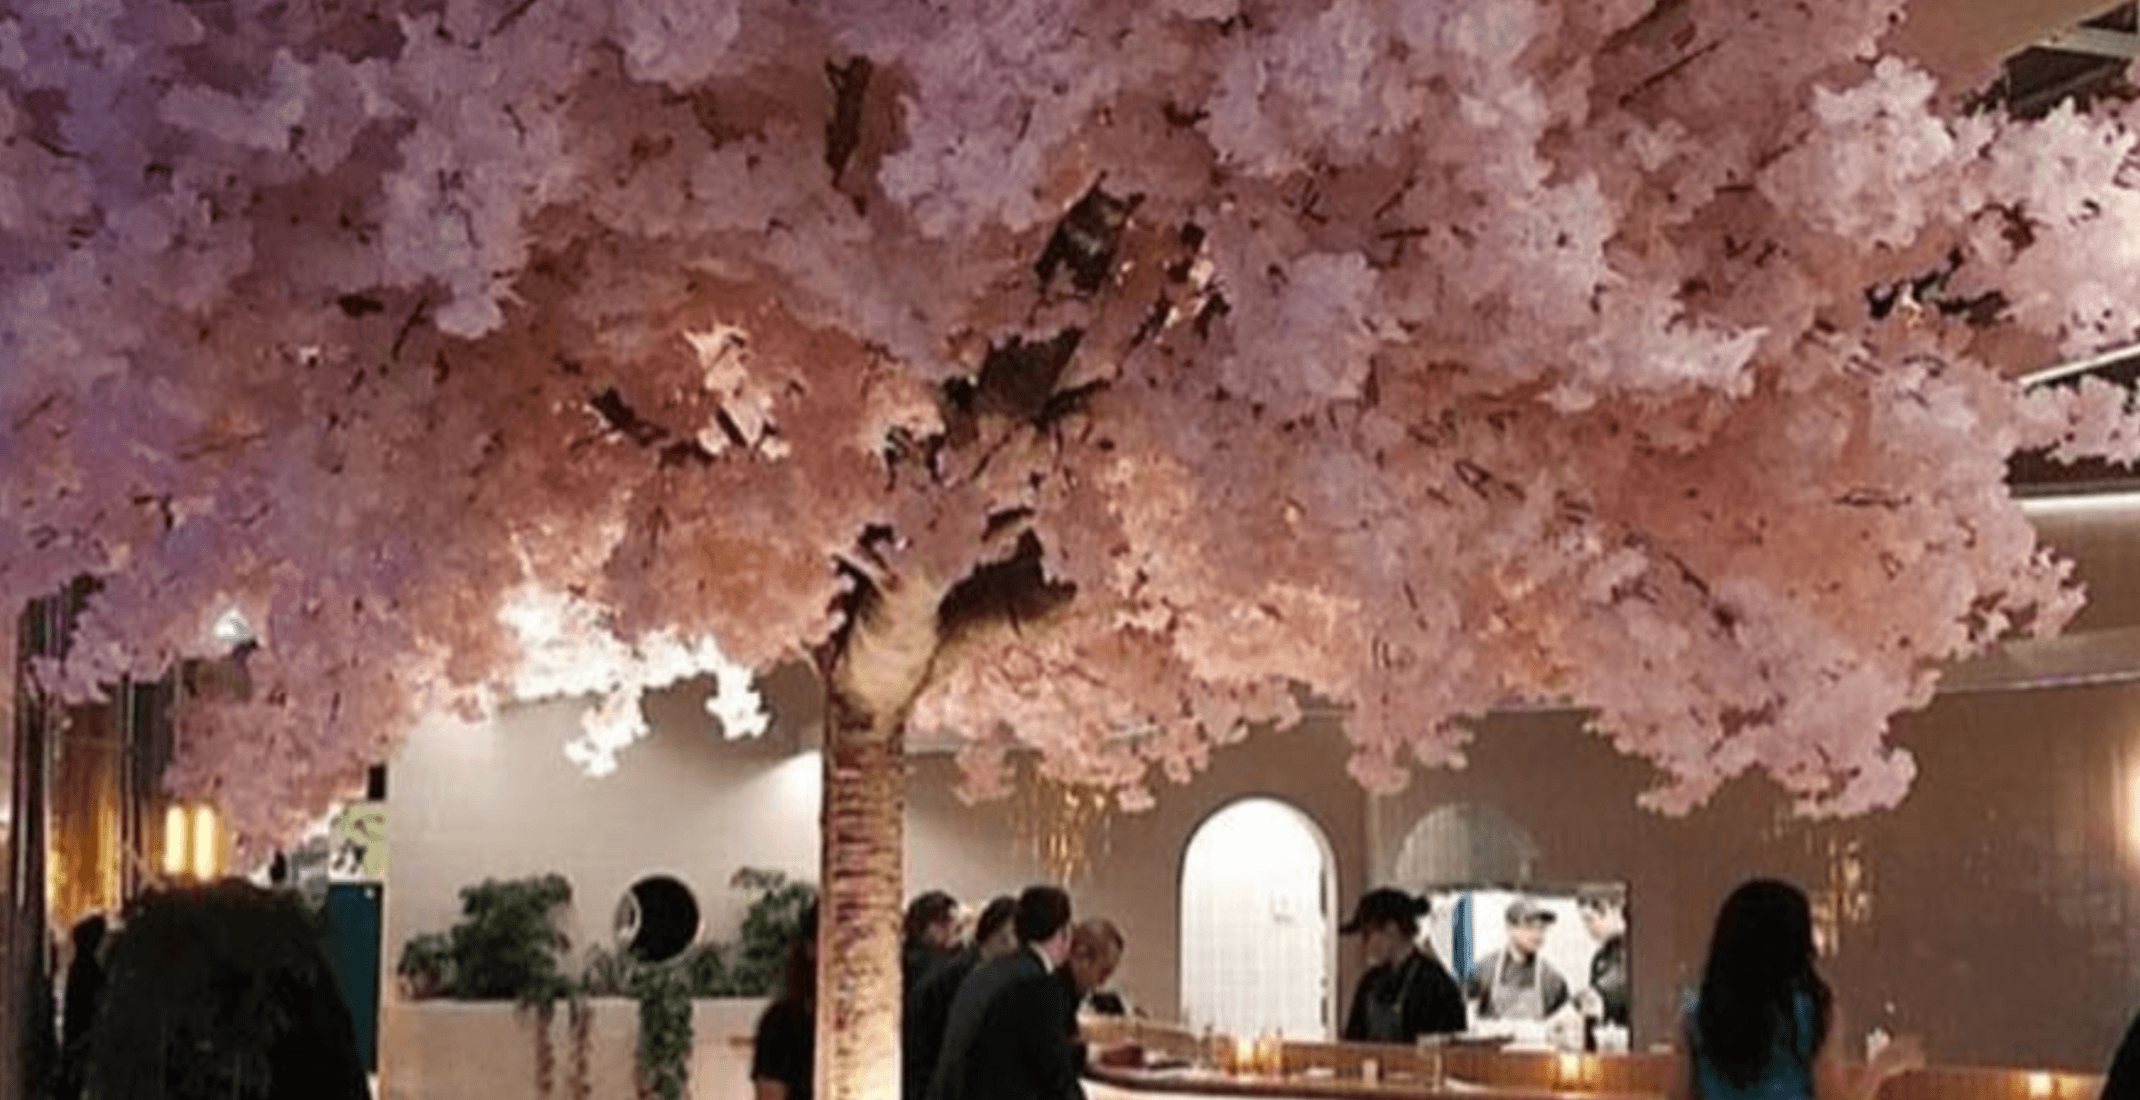 You can find a stunning indoor cherry blossom tree at this Montreal bar (PHOTOS)